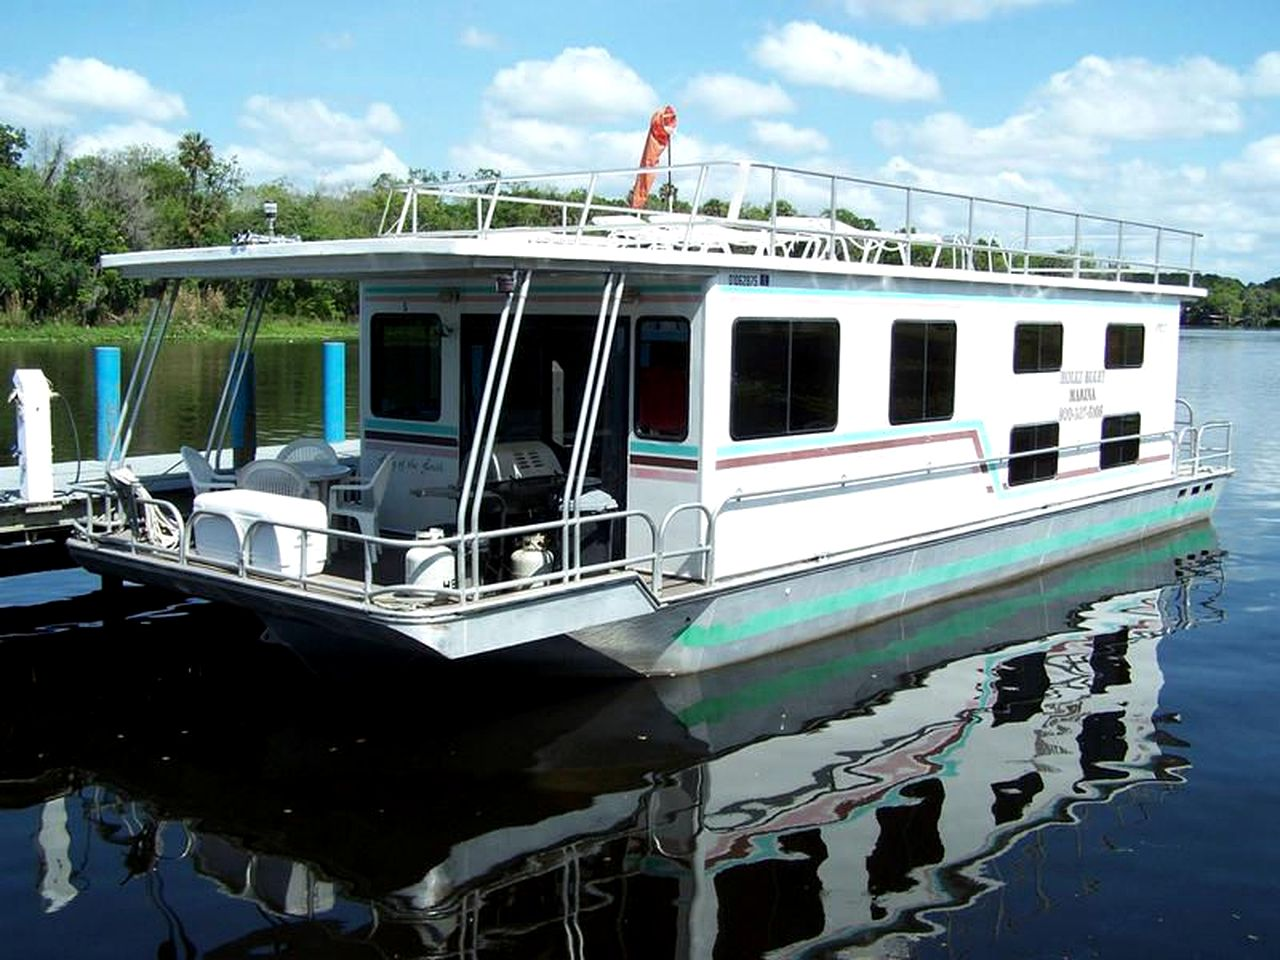 Ten-Person Houseboat Rental on St. Johns River near Ocala National Forest,  Florida